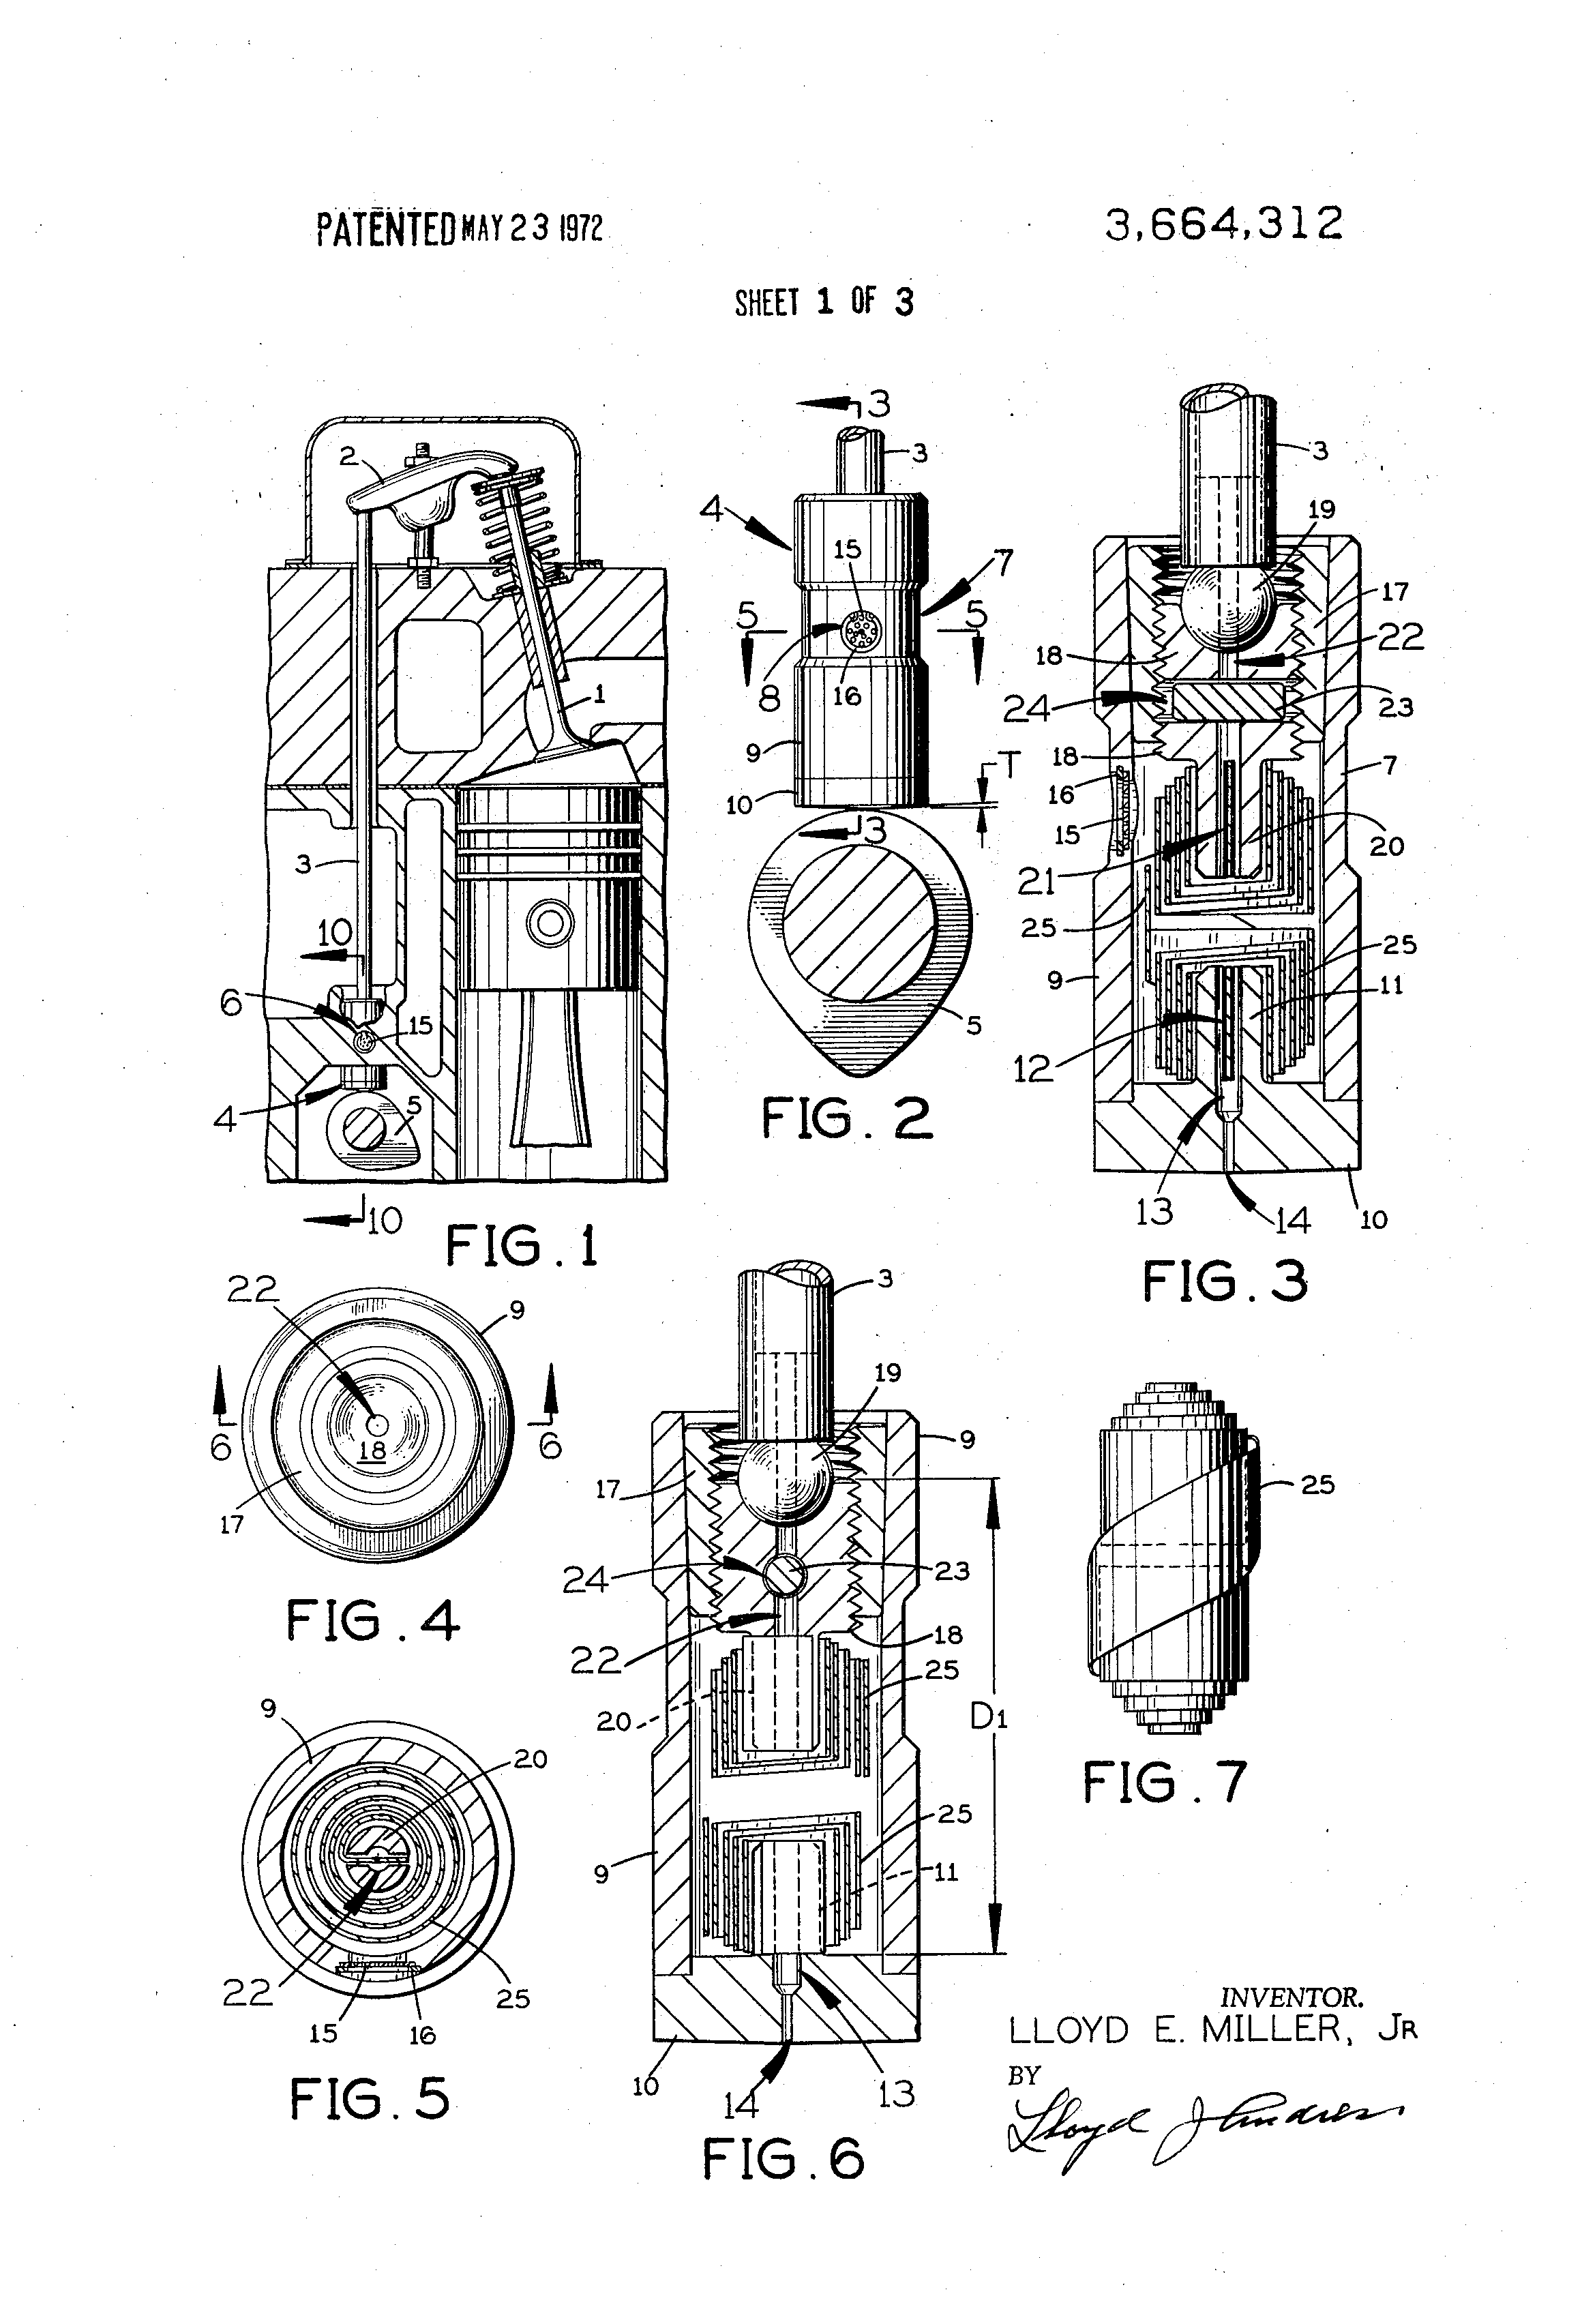 internal combustion engine diagram lifters patent us3664312 - thermo-compensating valve lifter for ... boxer internal combustion engine diagram